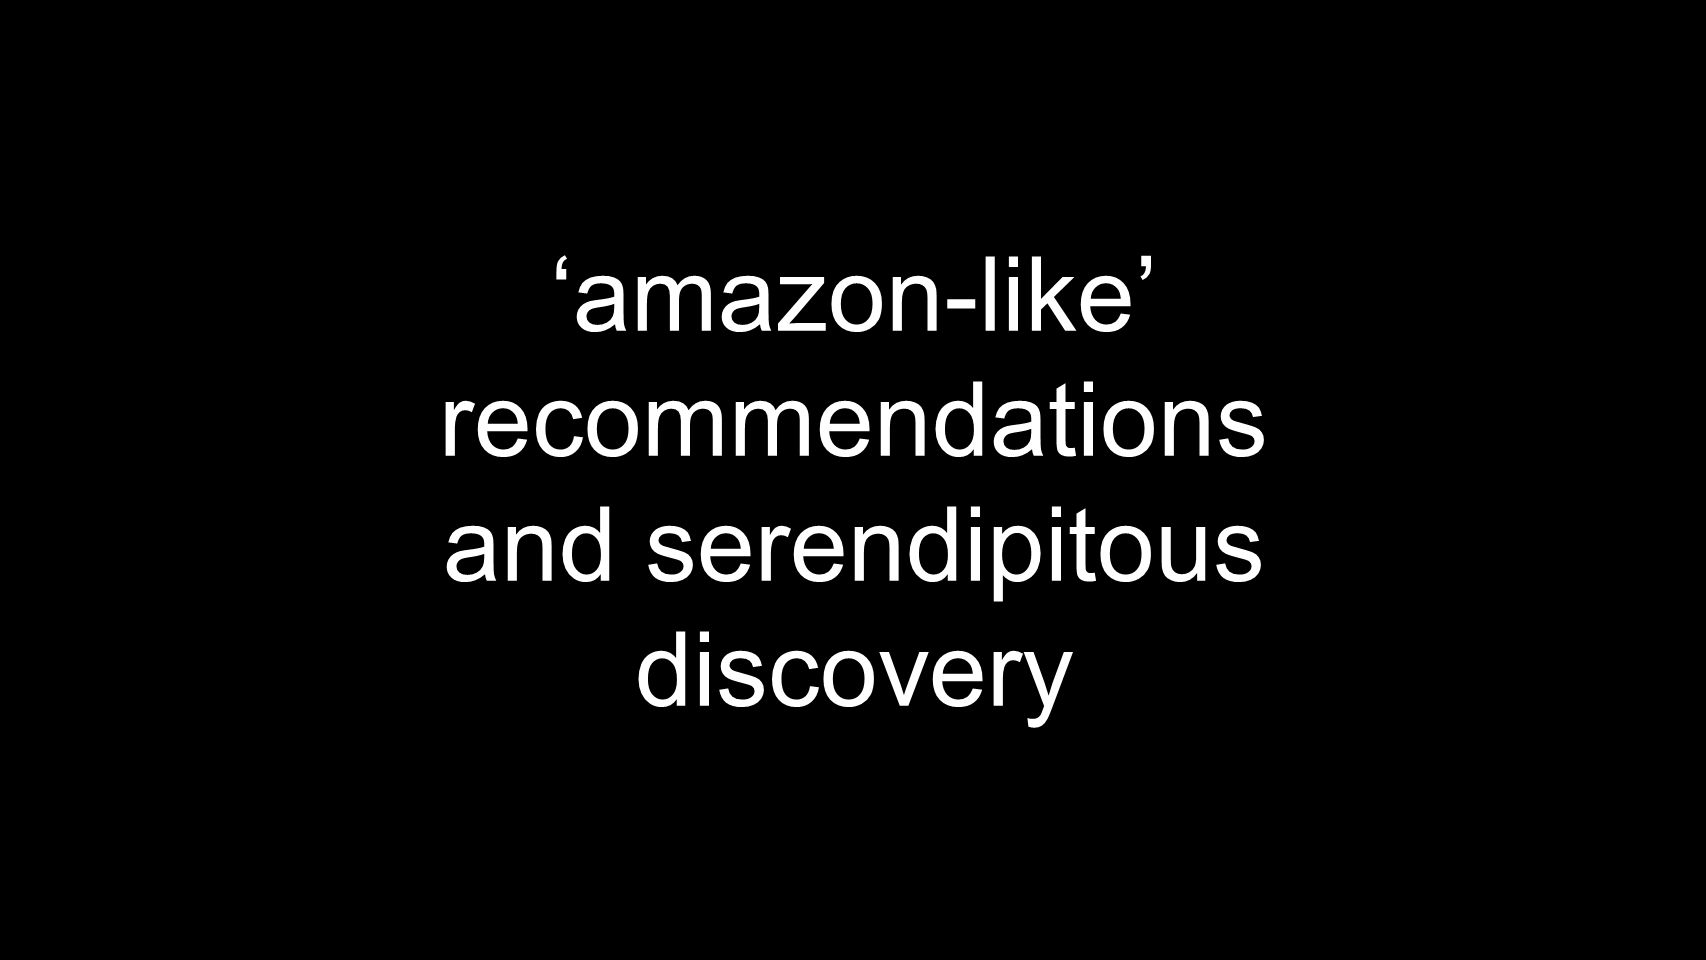 'amazon-like' recommendations and serendipitous discovery